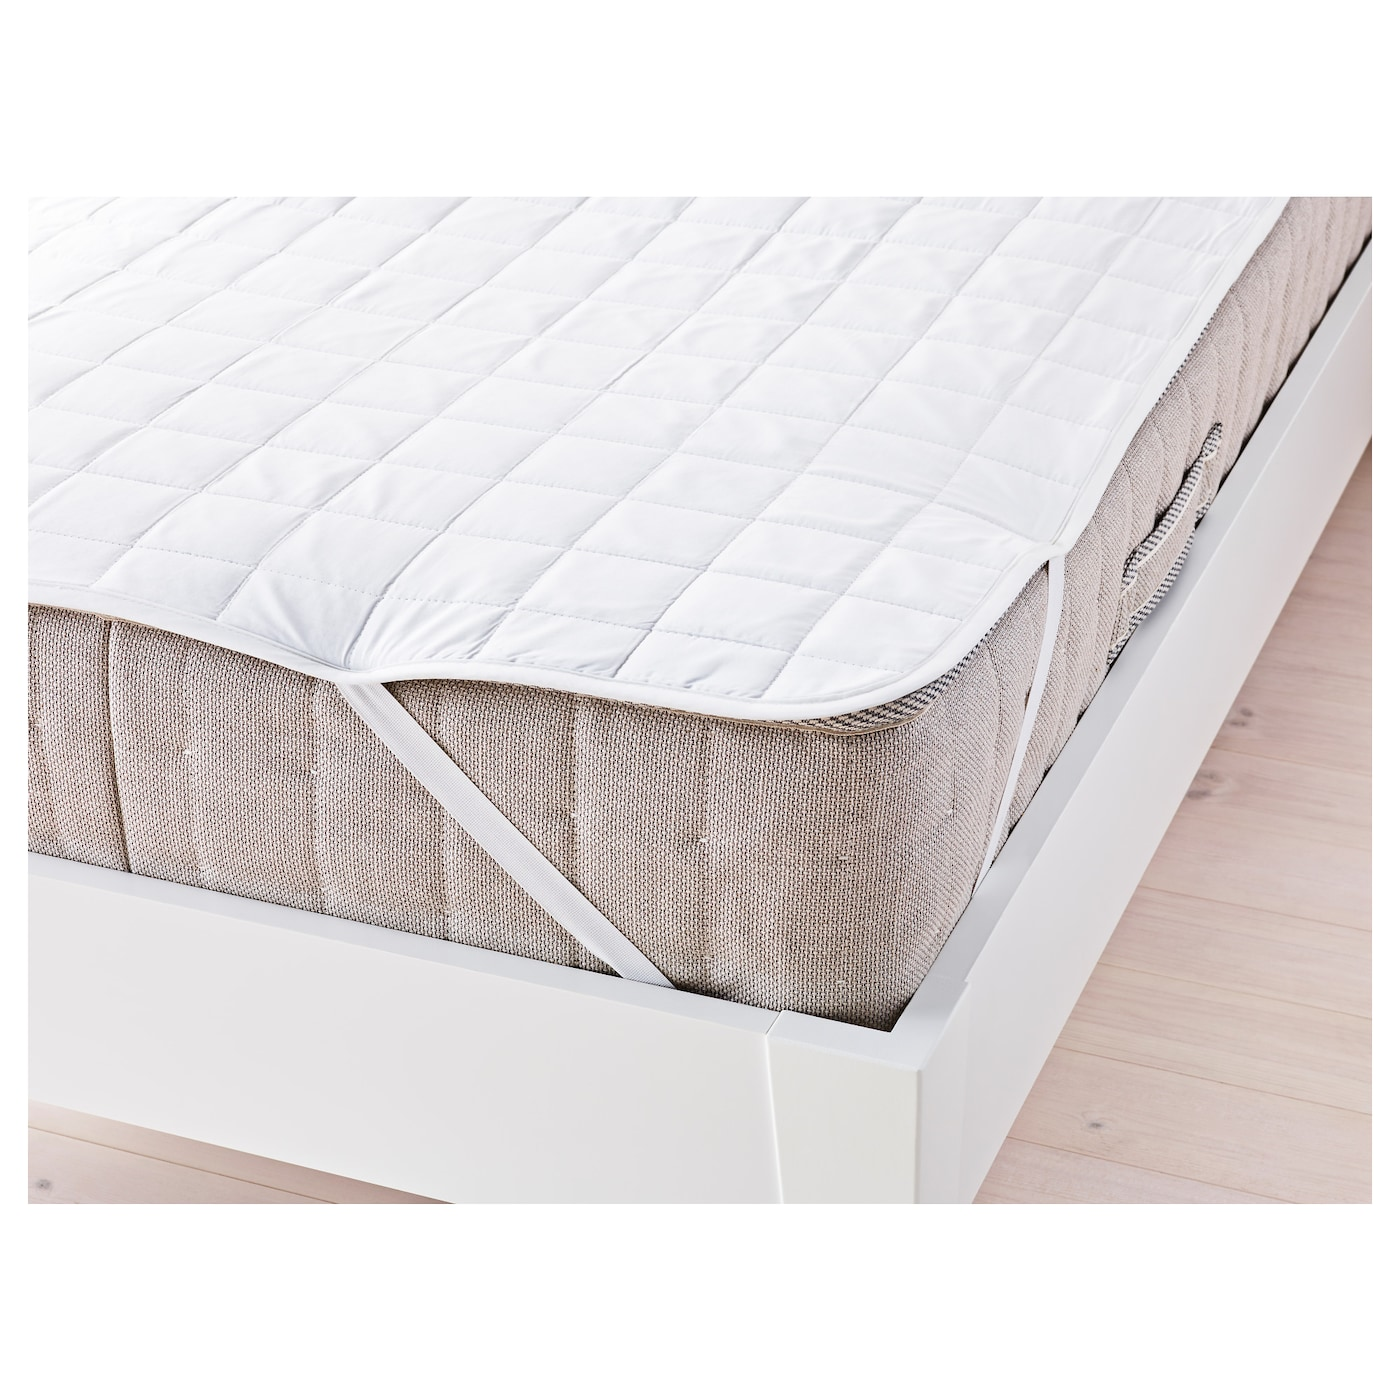 bedroom mattress bad sides mattresses this review of we spring hesstun the s good ikea down in break product reviews and will